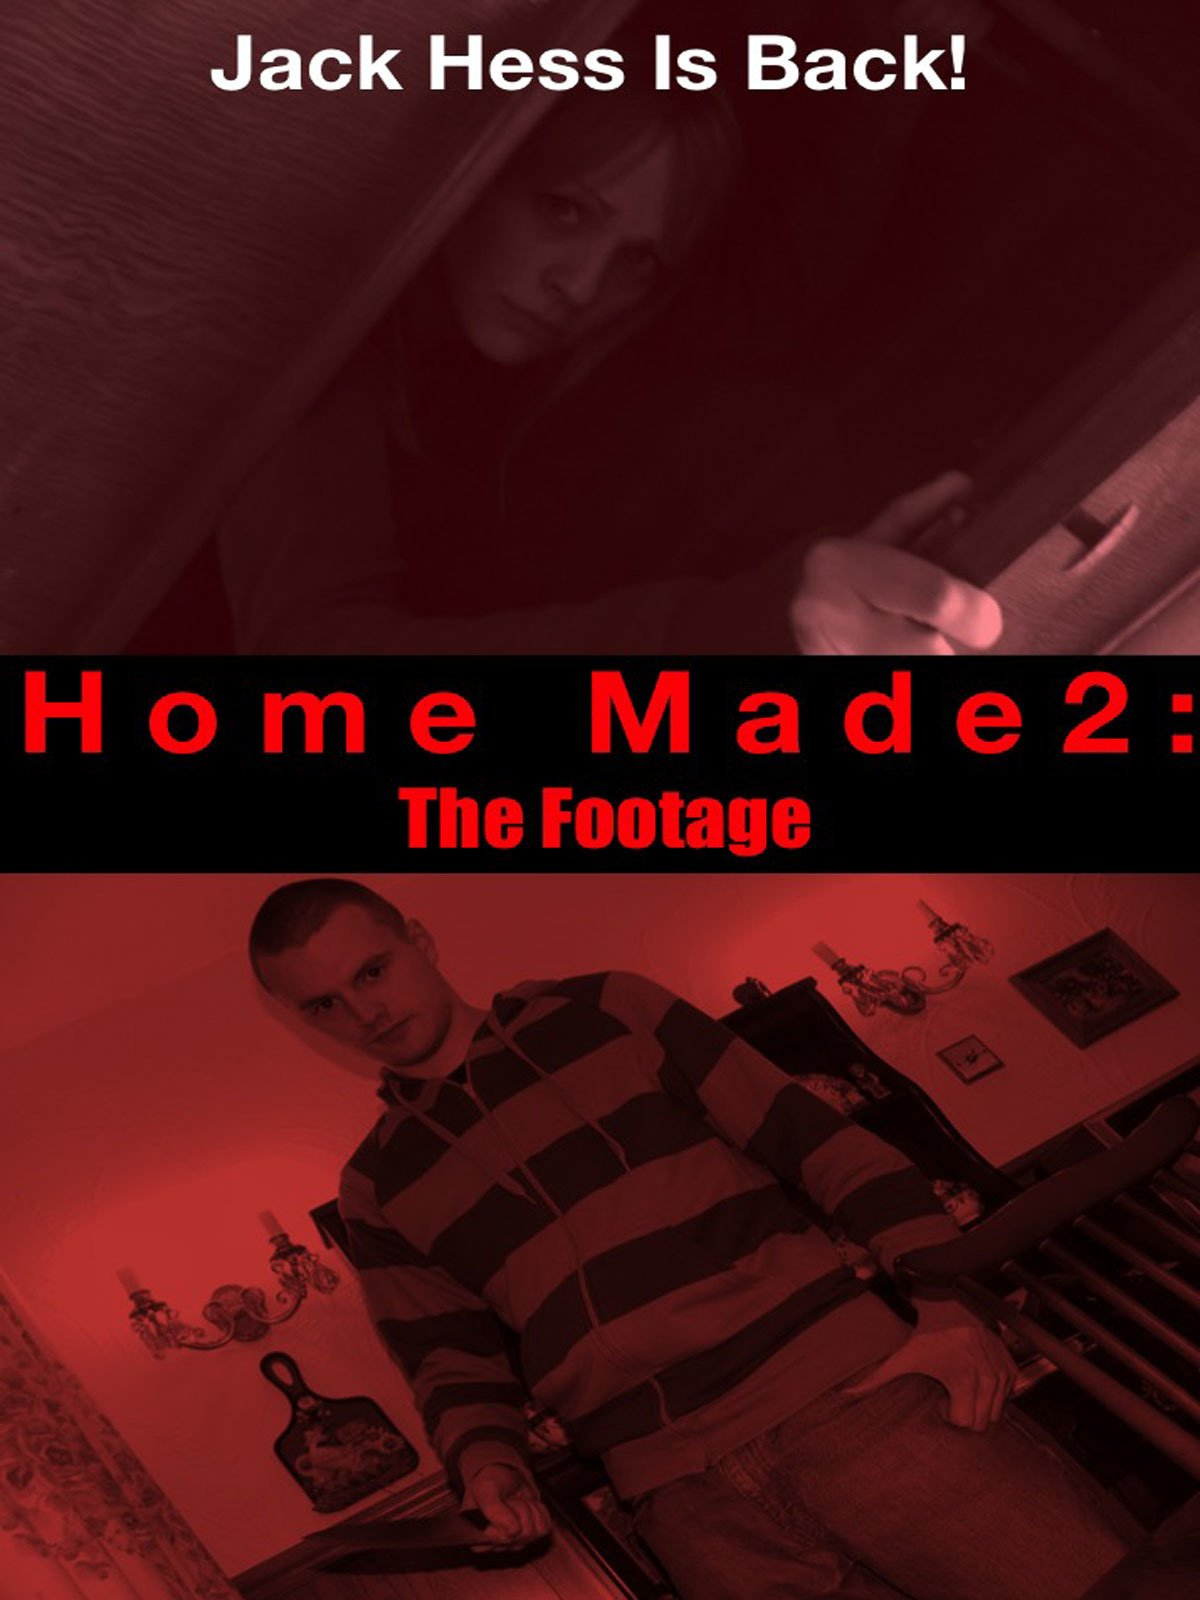 Home Made 2: The Footage